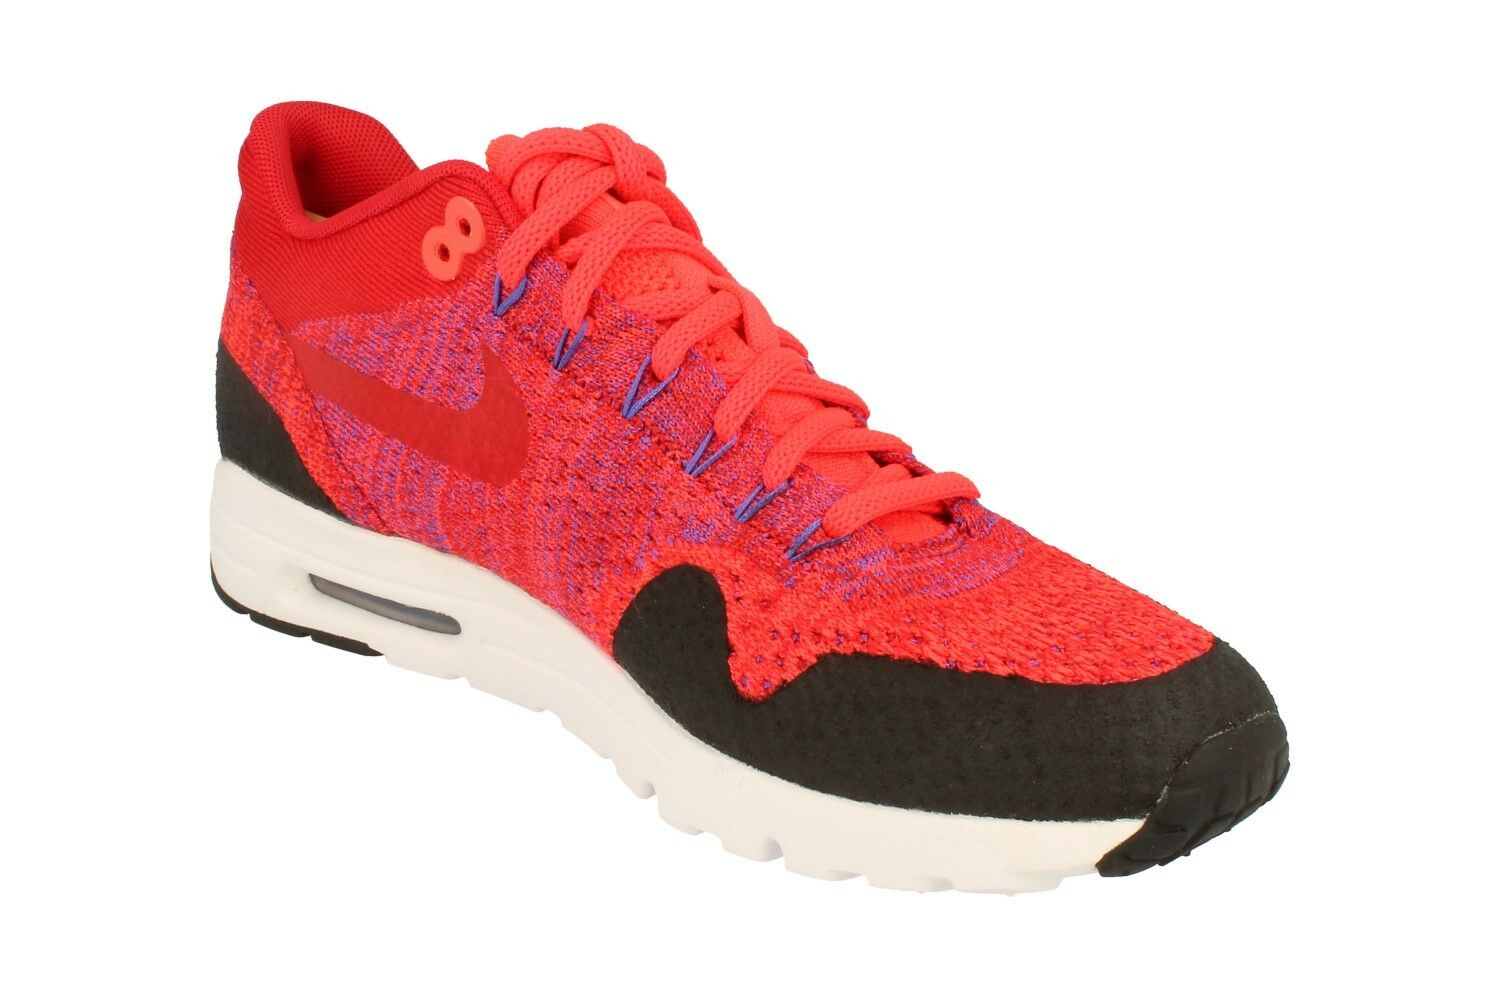 Nike femme air max 1 1 1 ultra flyknit running baskets 859517 600 baskets chaussures 59c7fd